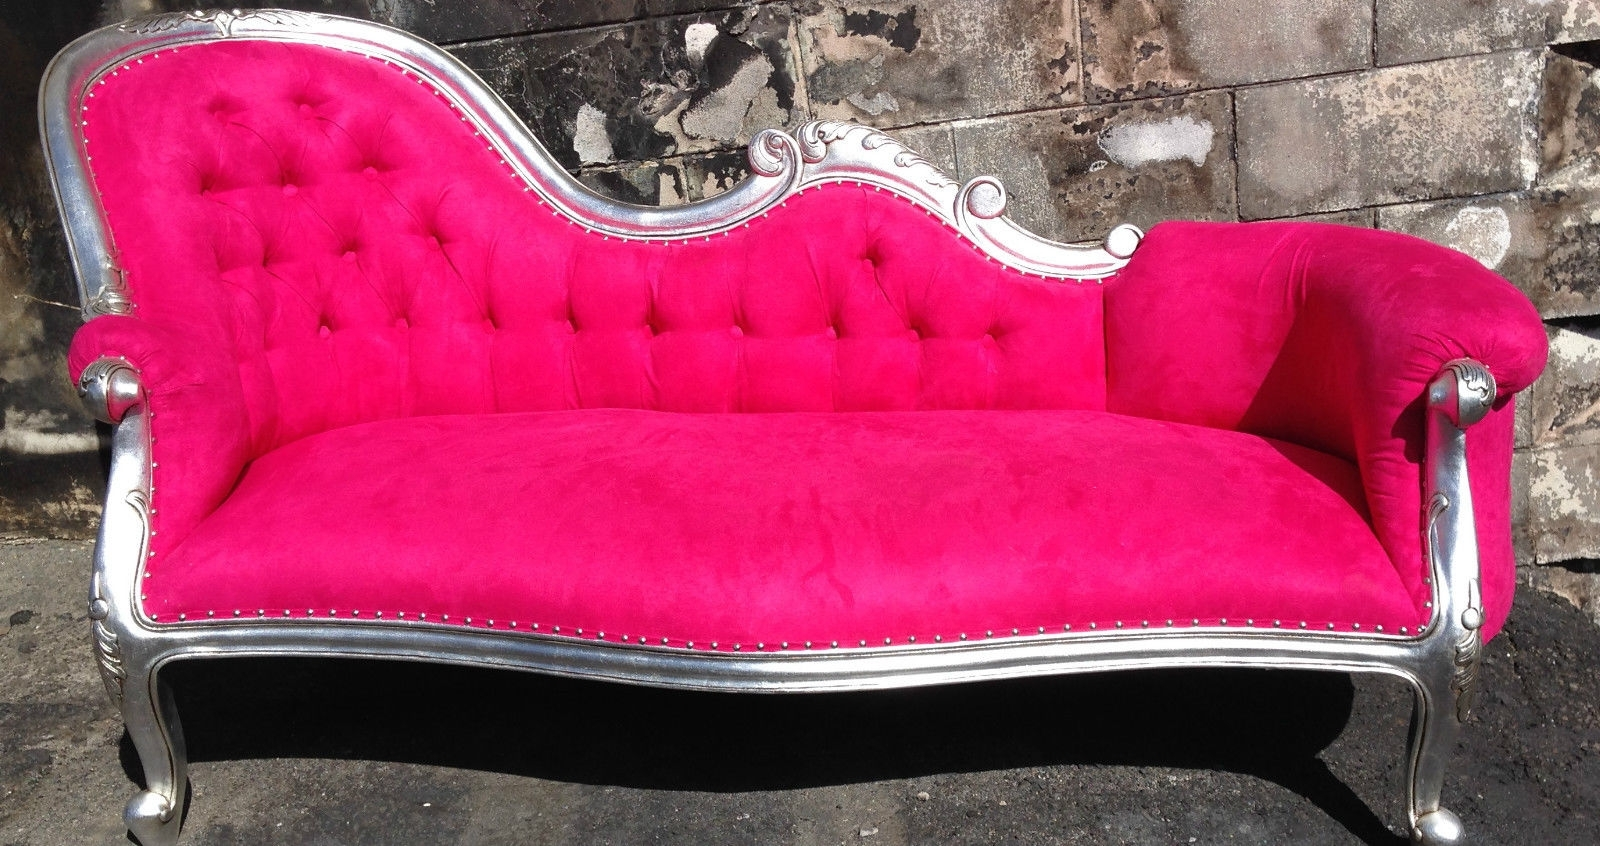 Rockstar Pink Chaise Lounge Chesterfield Sofa Queen Loveseat Couch Throughout Preferred Pink Chaise Lounges (View 6 of 15)